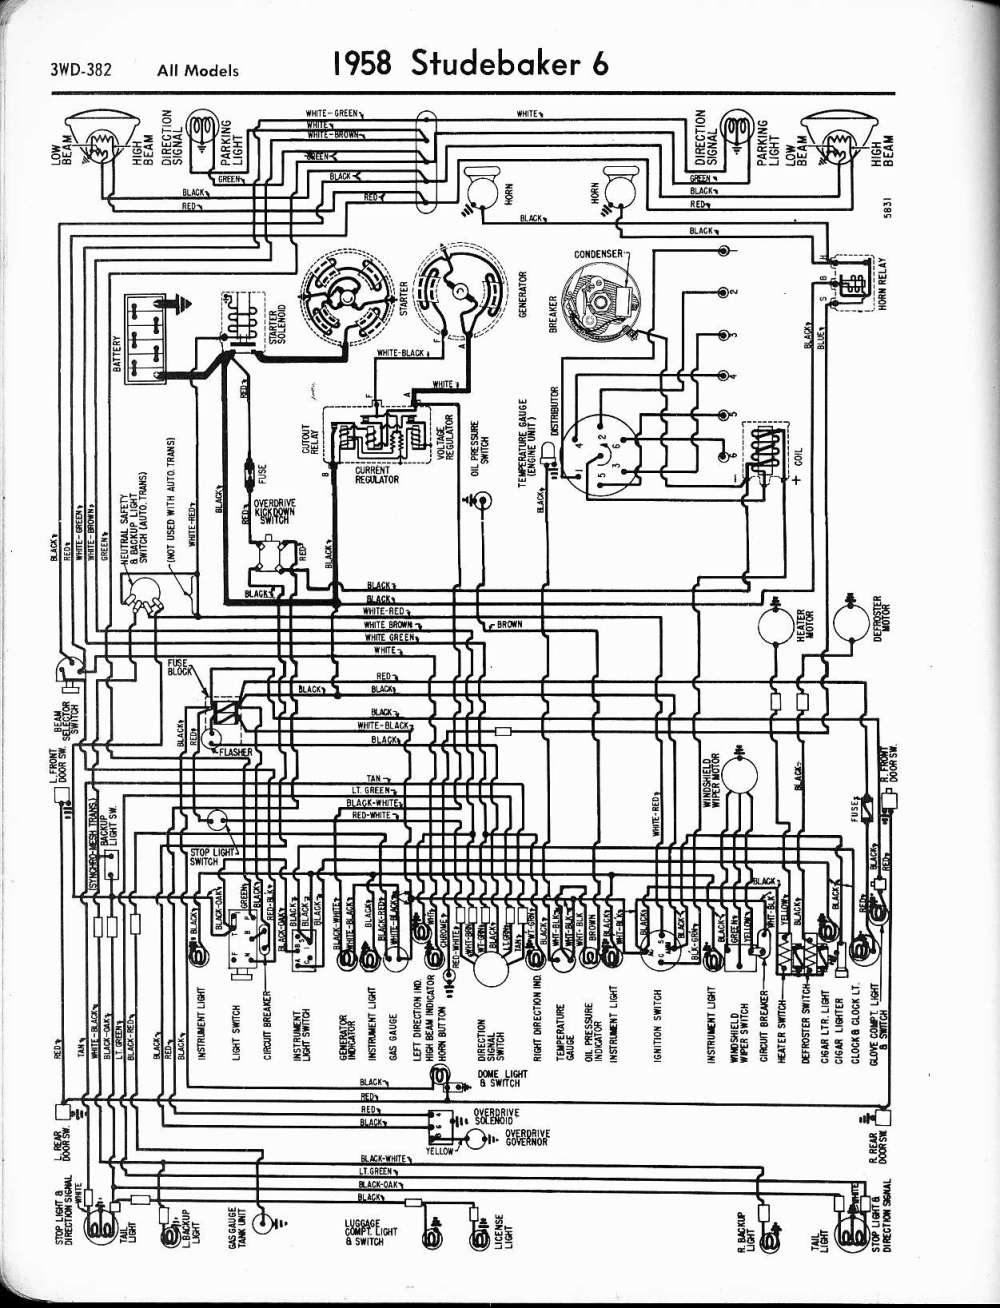 medium resolution of wiring diagram for 1958 studebaker and packard clipper schema 1950 packard wiring diagram